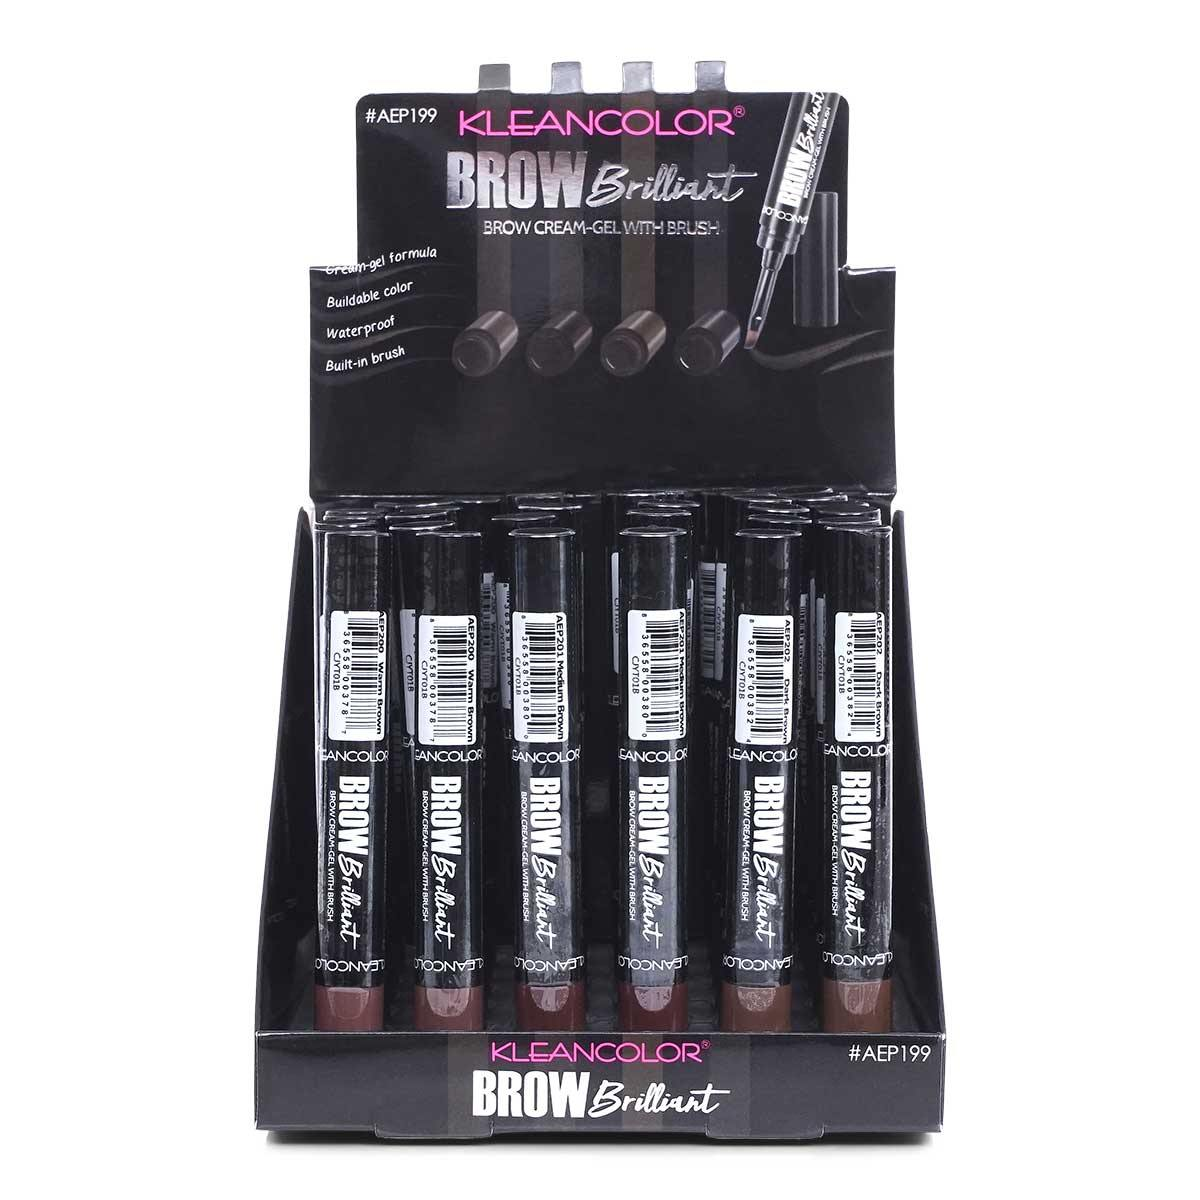 KLEANCOLOR Brow Brilliant Waterproof Cream-Gel with Brush, 3 color (AEP199) - Display of 36 units